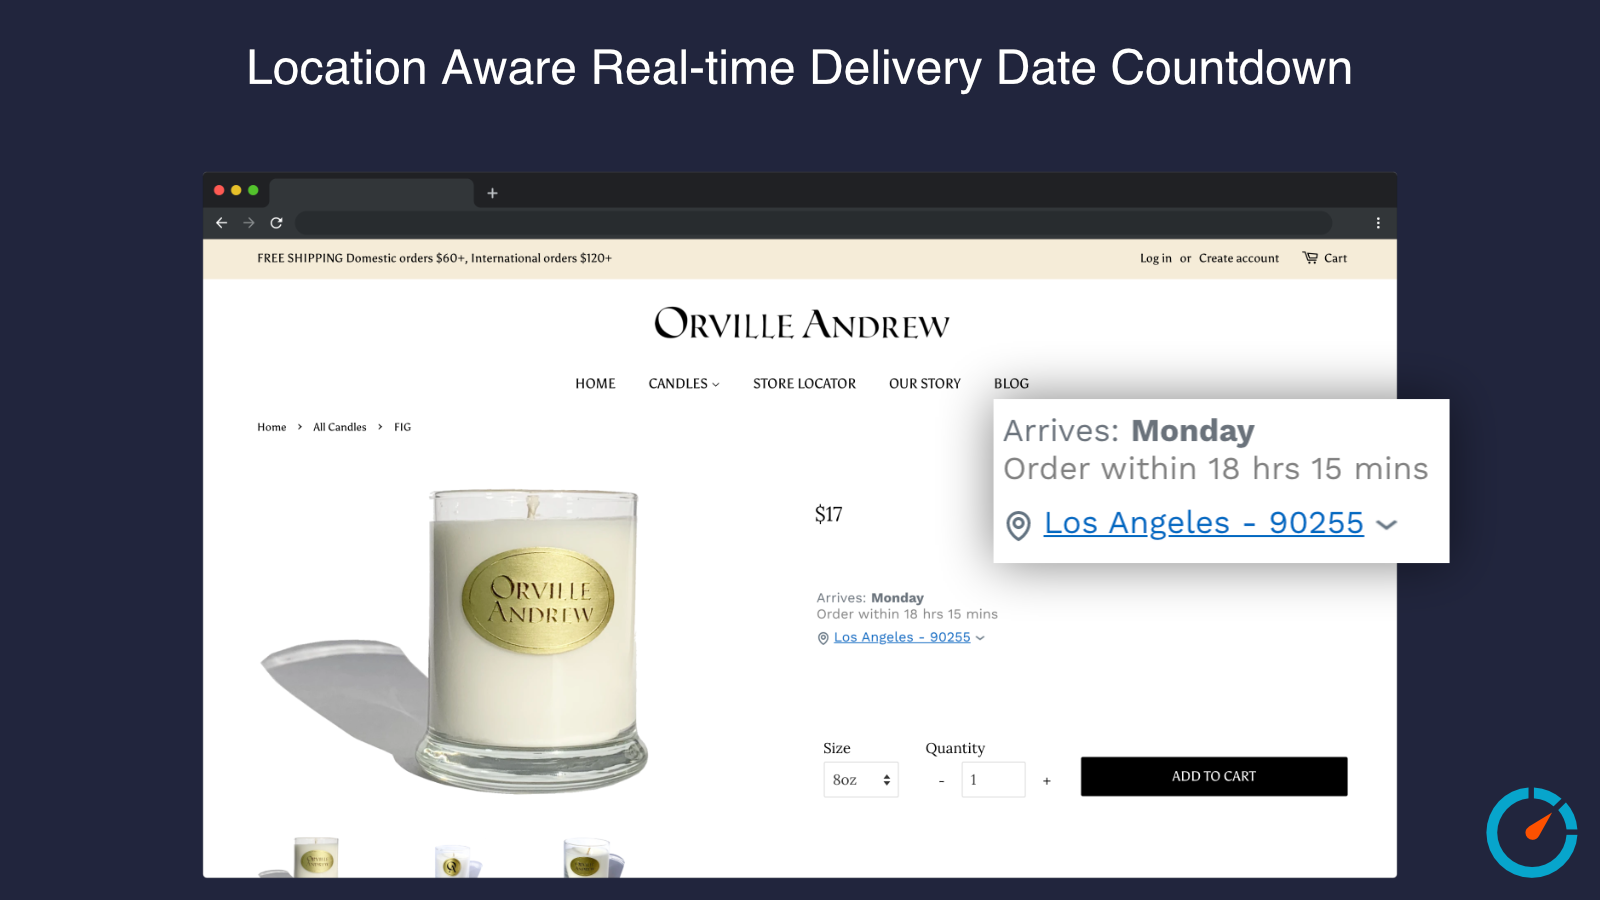 lLocation Aware Real-time Delivery Date Countdown